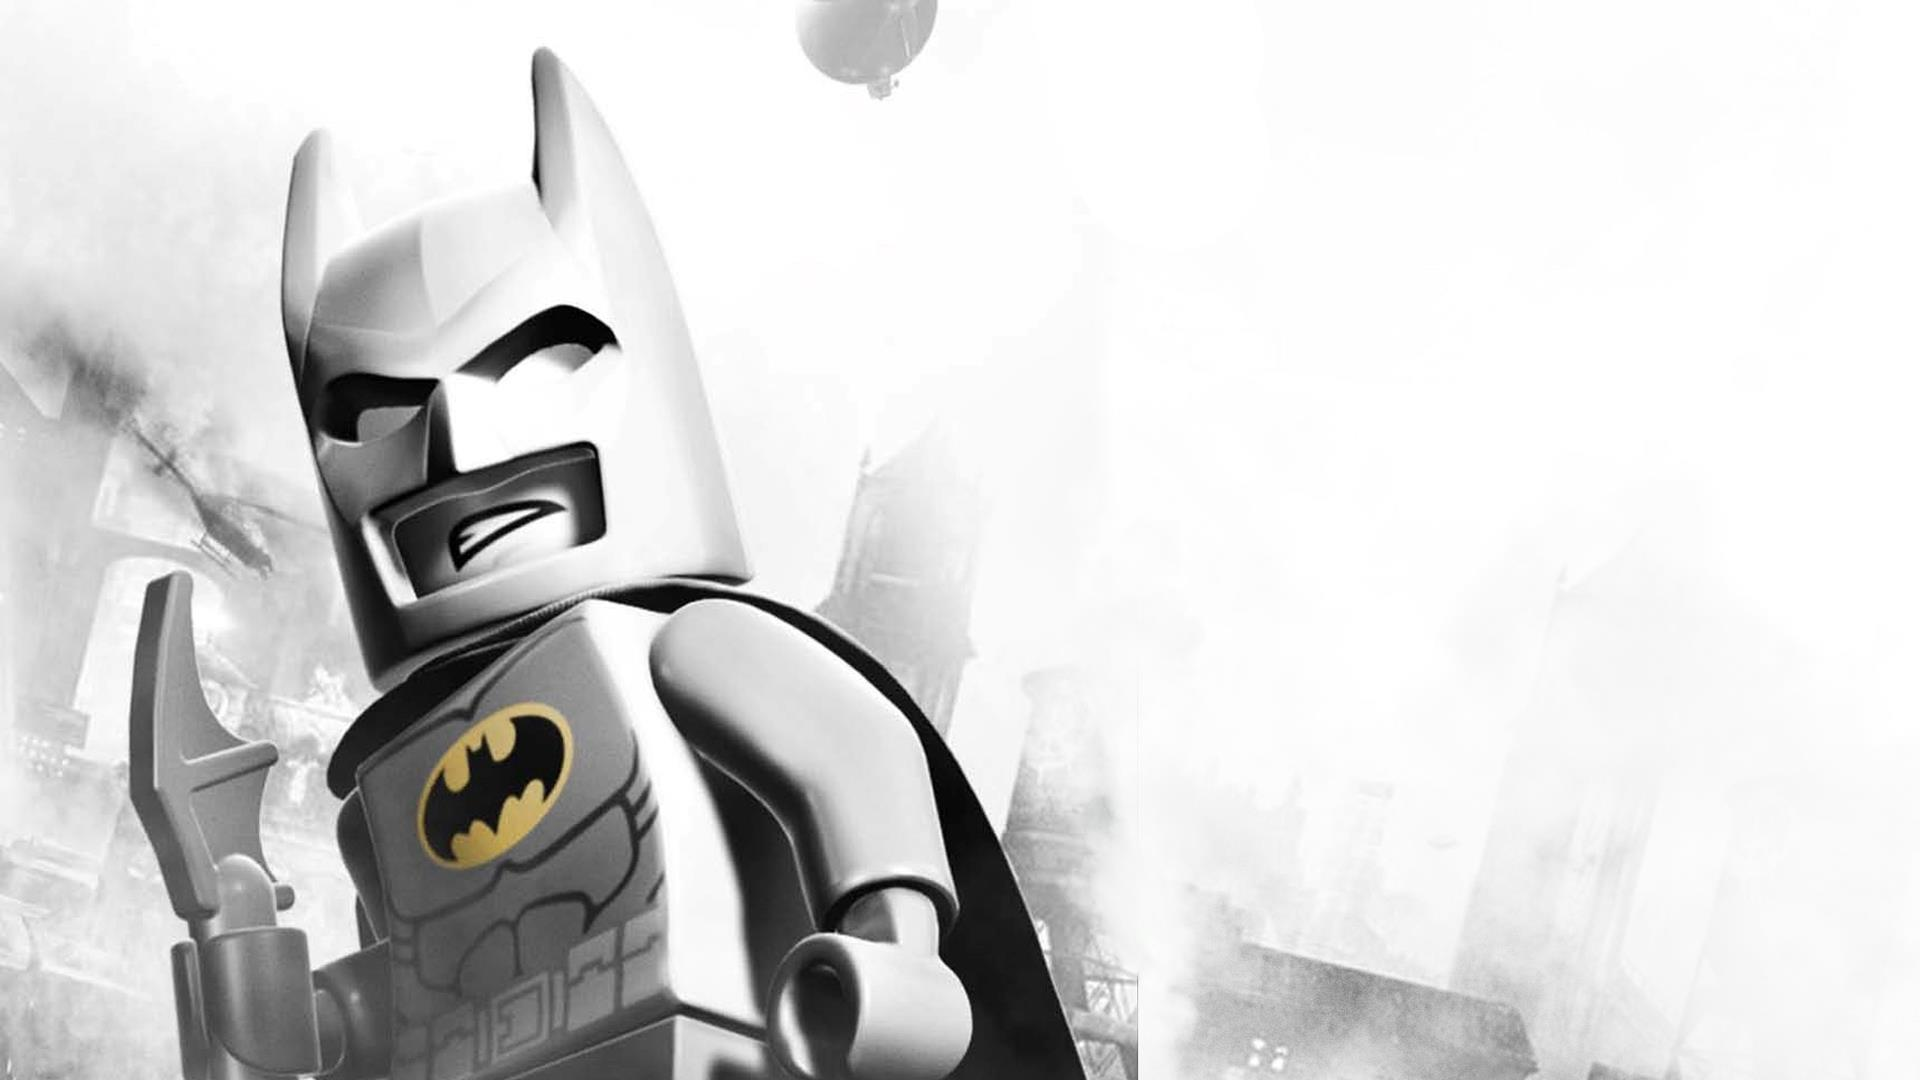 Lego Hd Wallpapers Wallpaper Cave